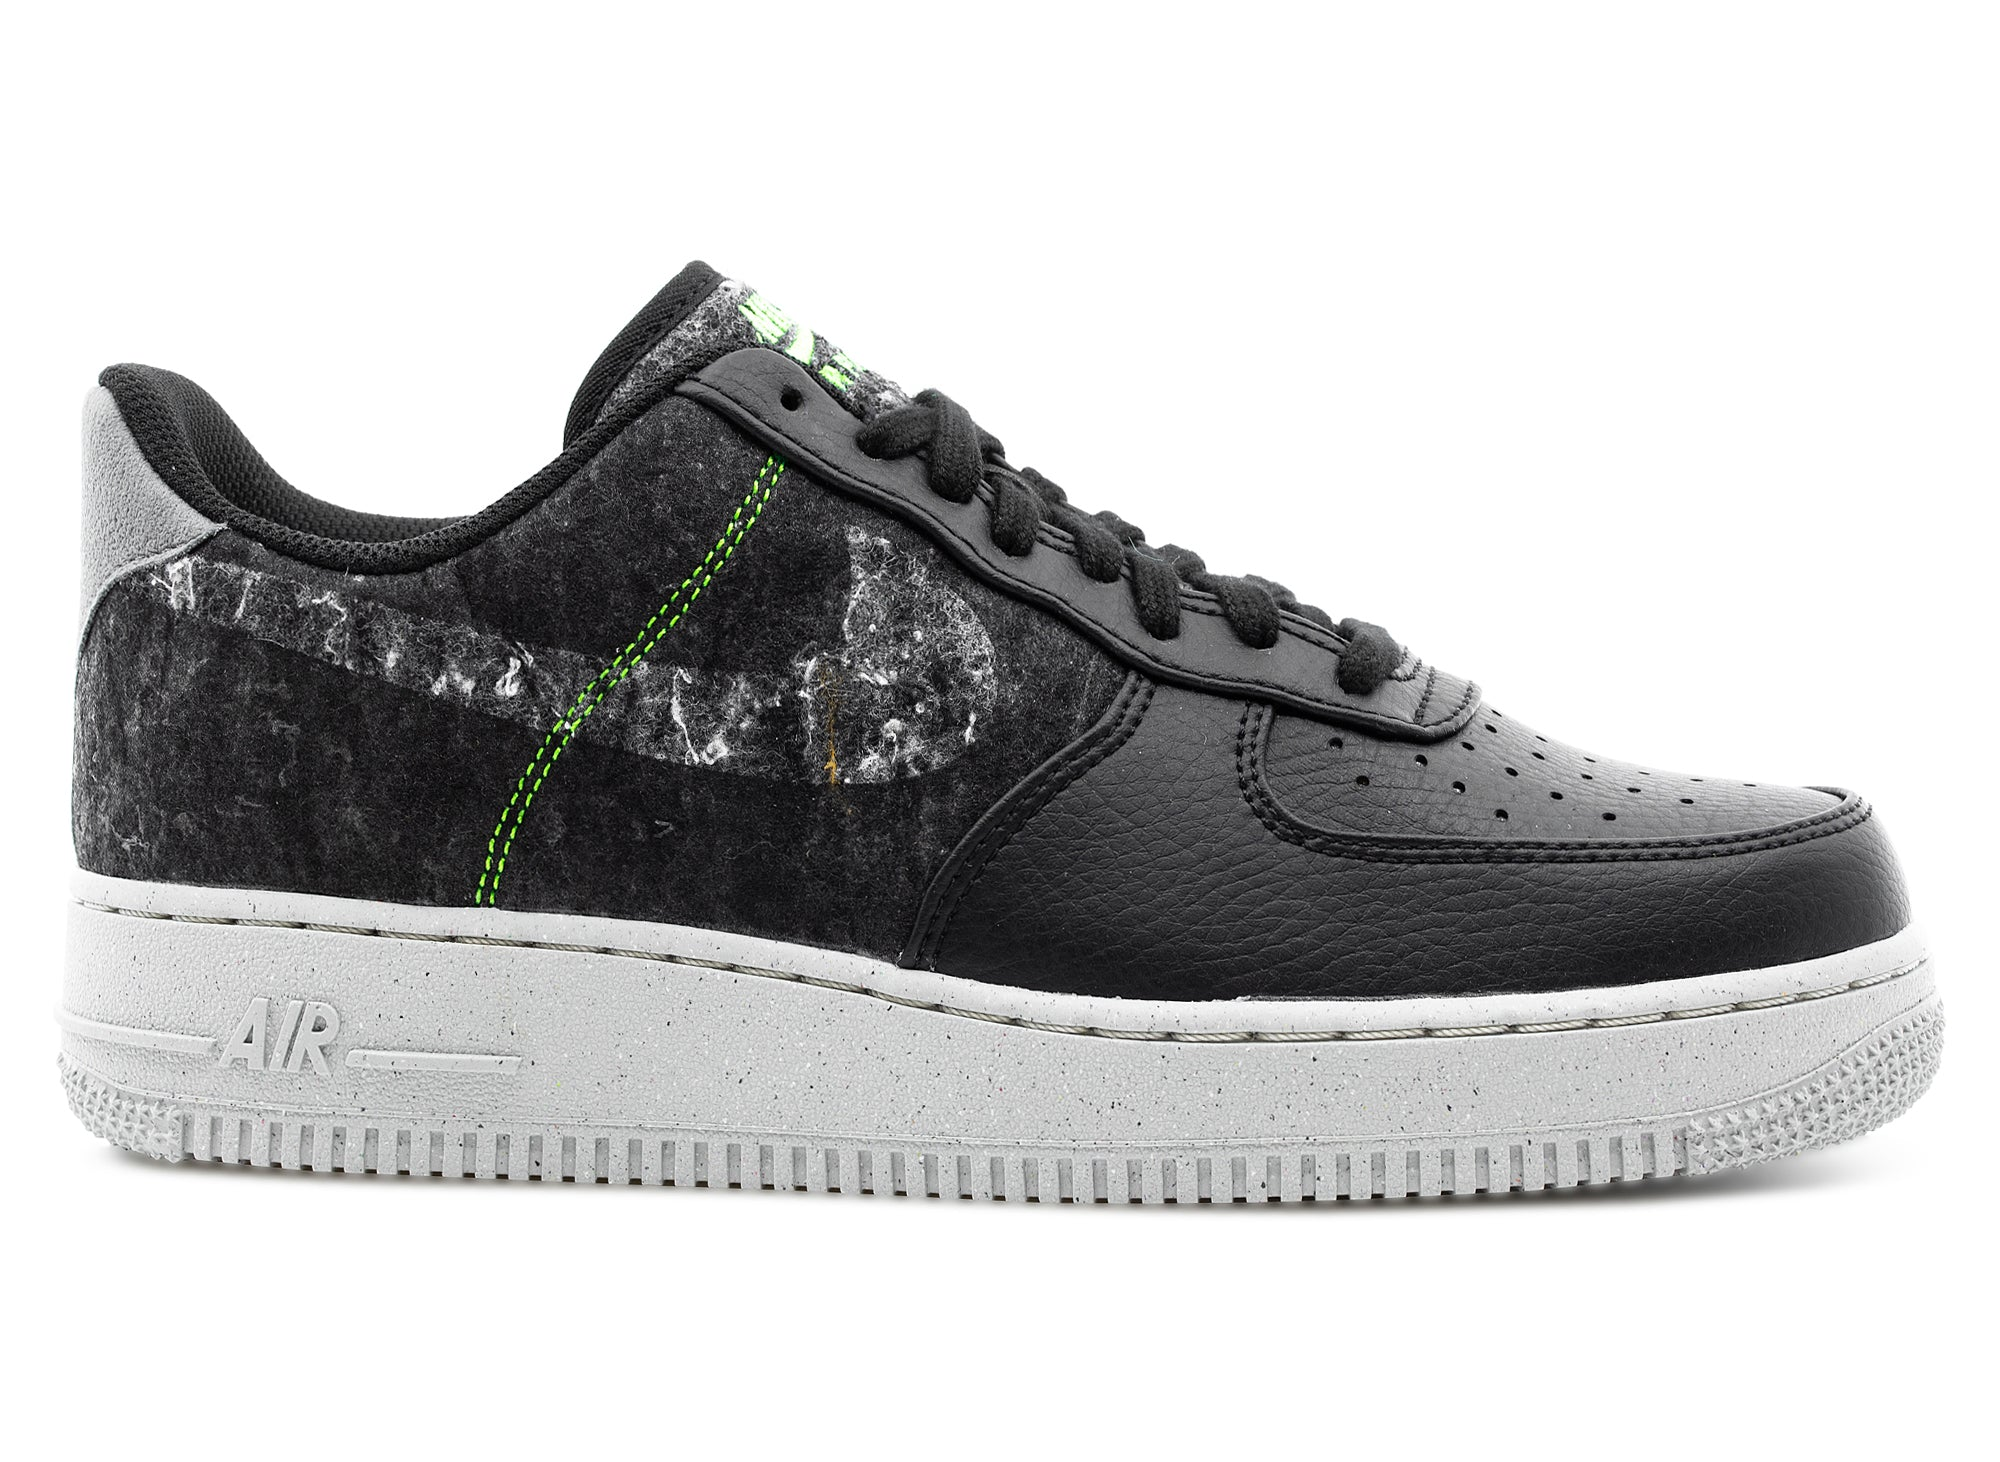 Nike Air Force 1 '07 LV8 Recycled Wool Pack 'Black Electric Green'